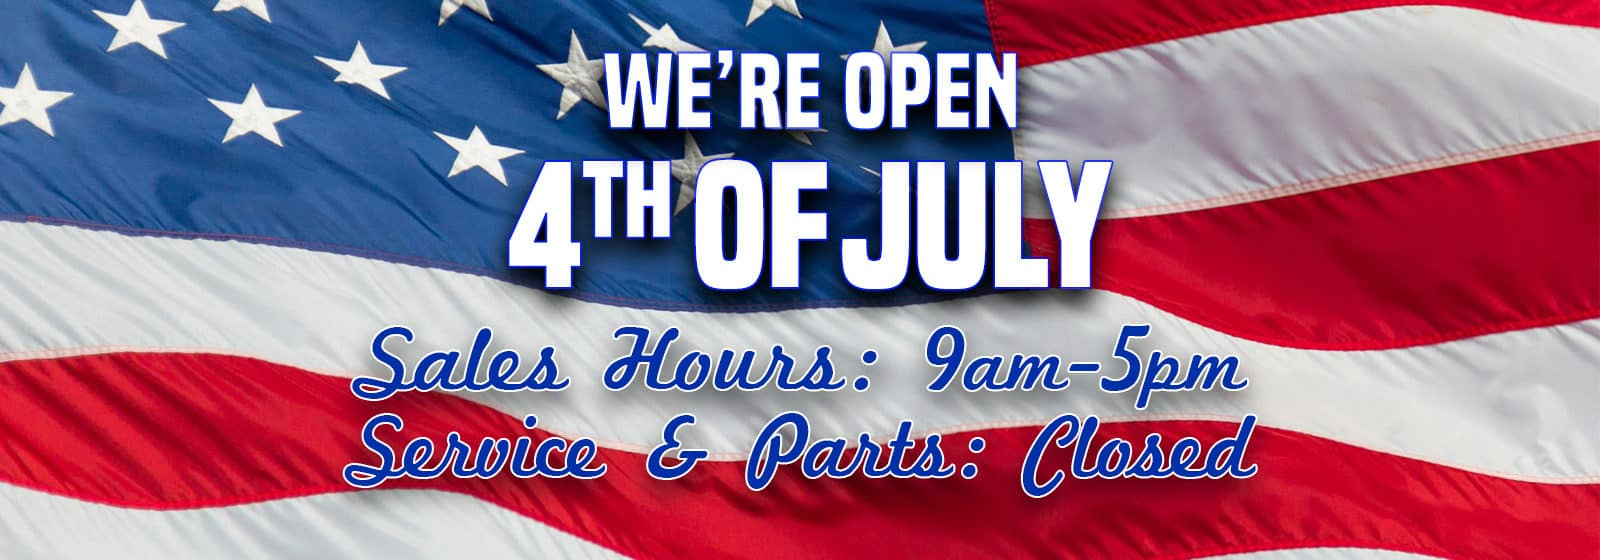 4th of July Holiday Sales Hours